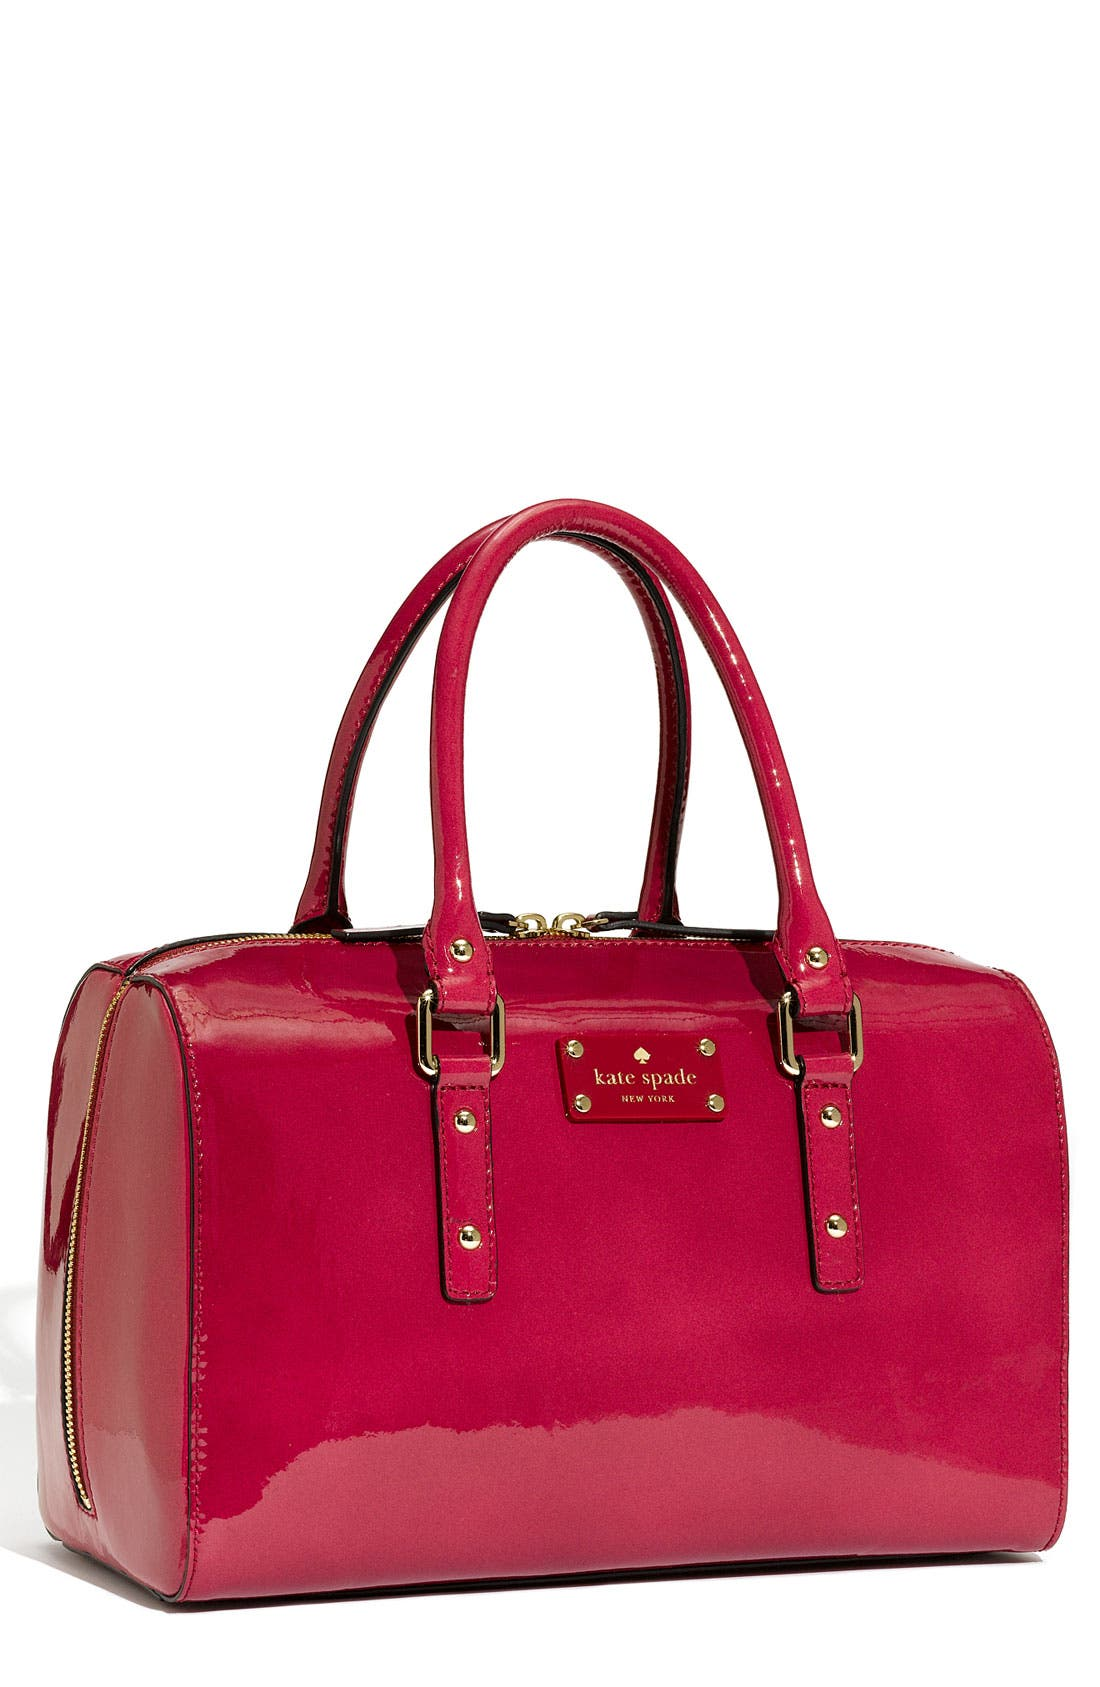 Main Image - kate spade new york 'flicker - melinda' satchel